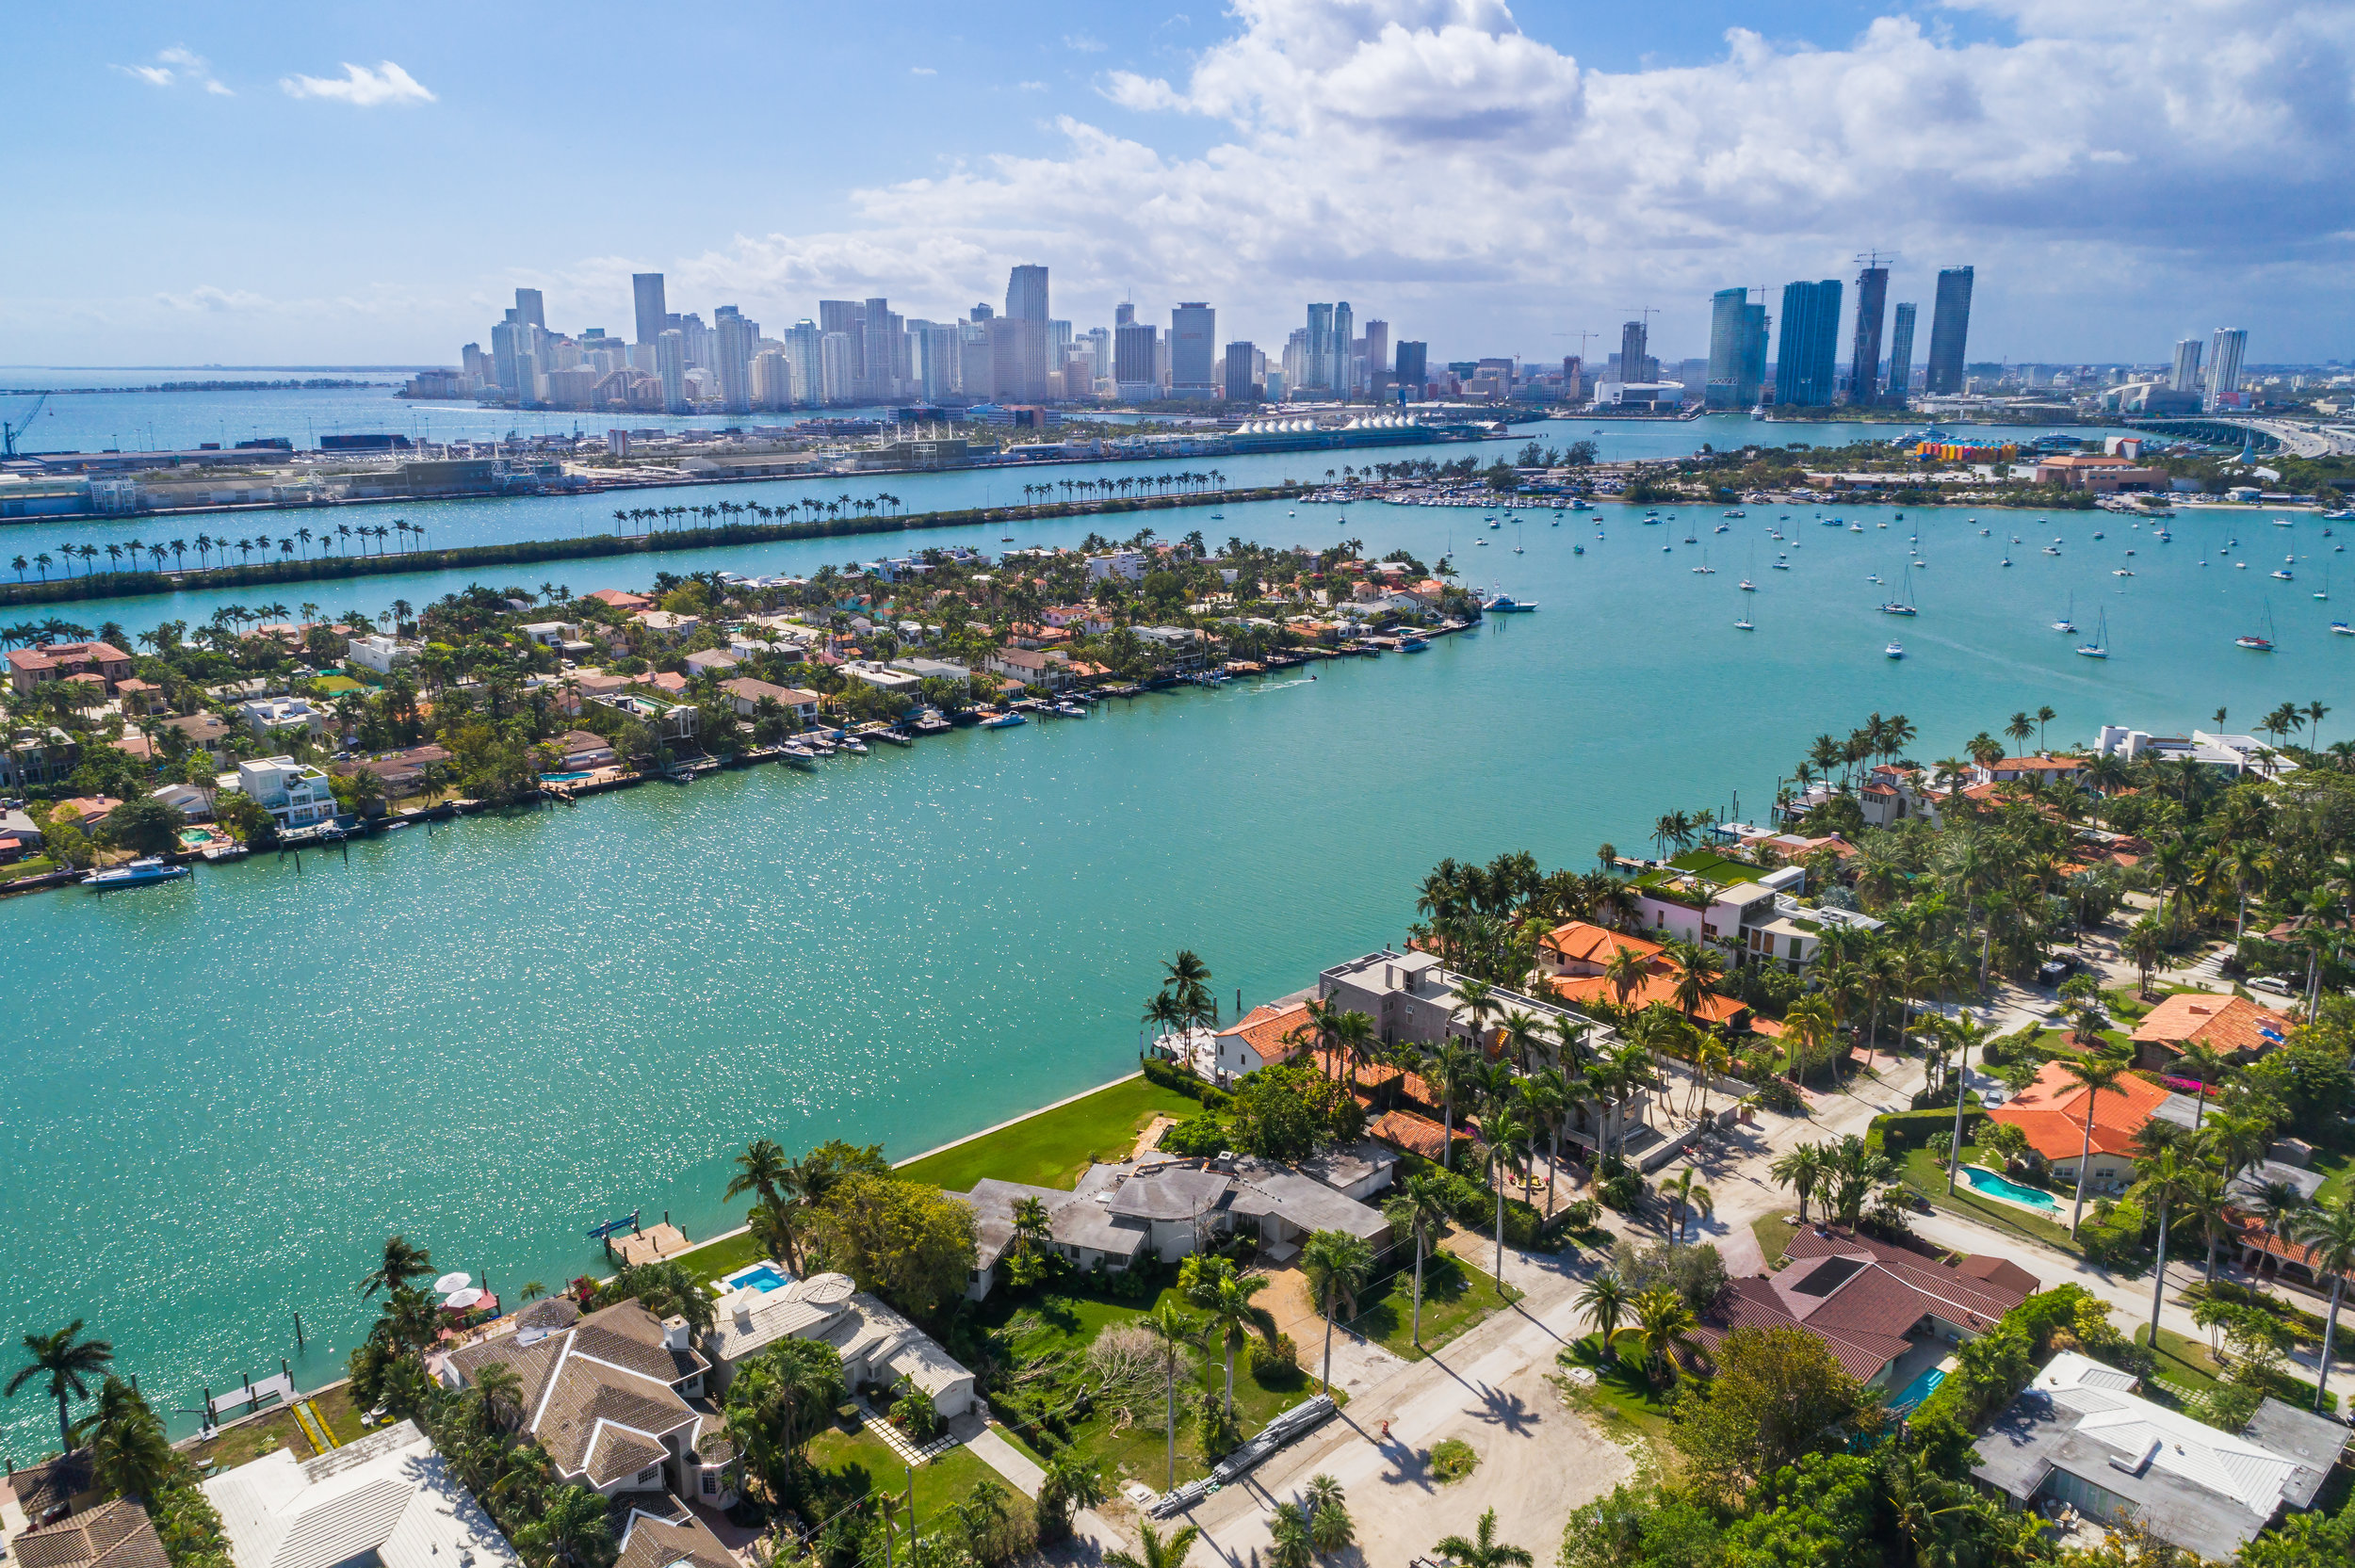 Property Donated To Mt. Sinai Medical Center On Hibiscus Island Sells For $11.6 Million